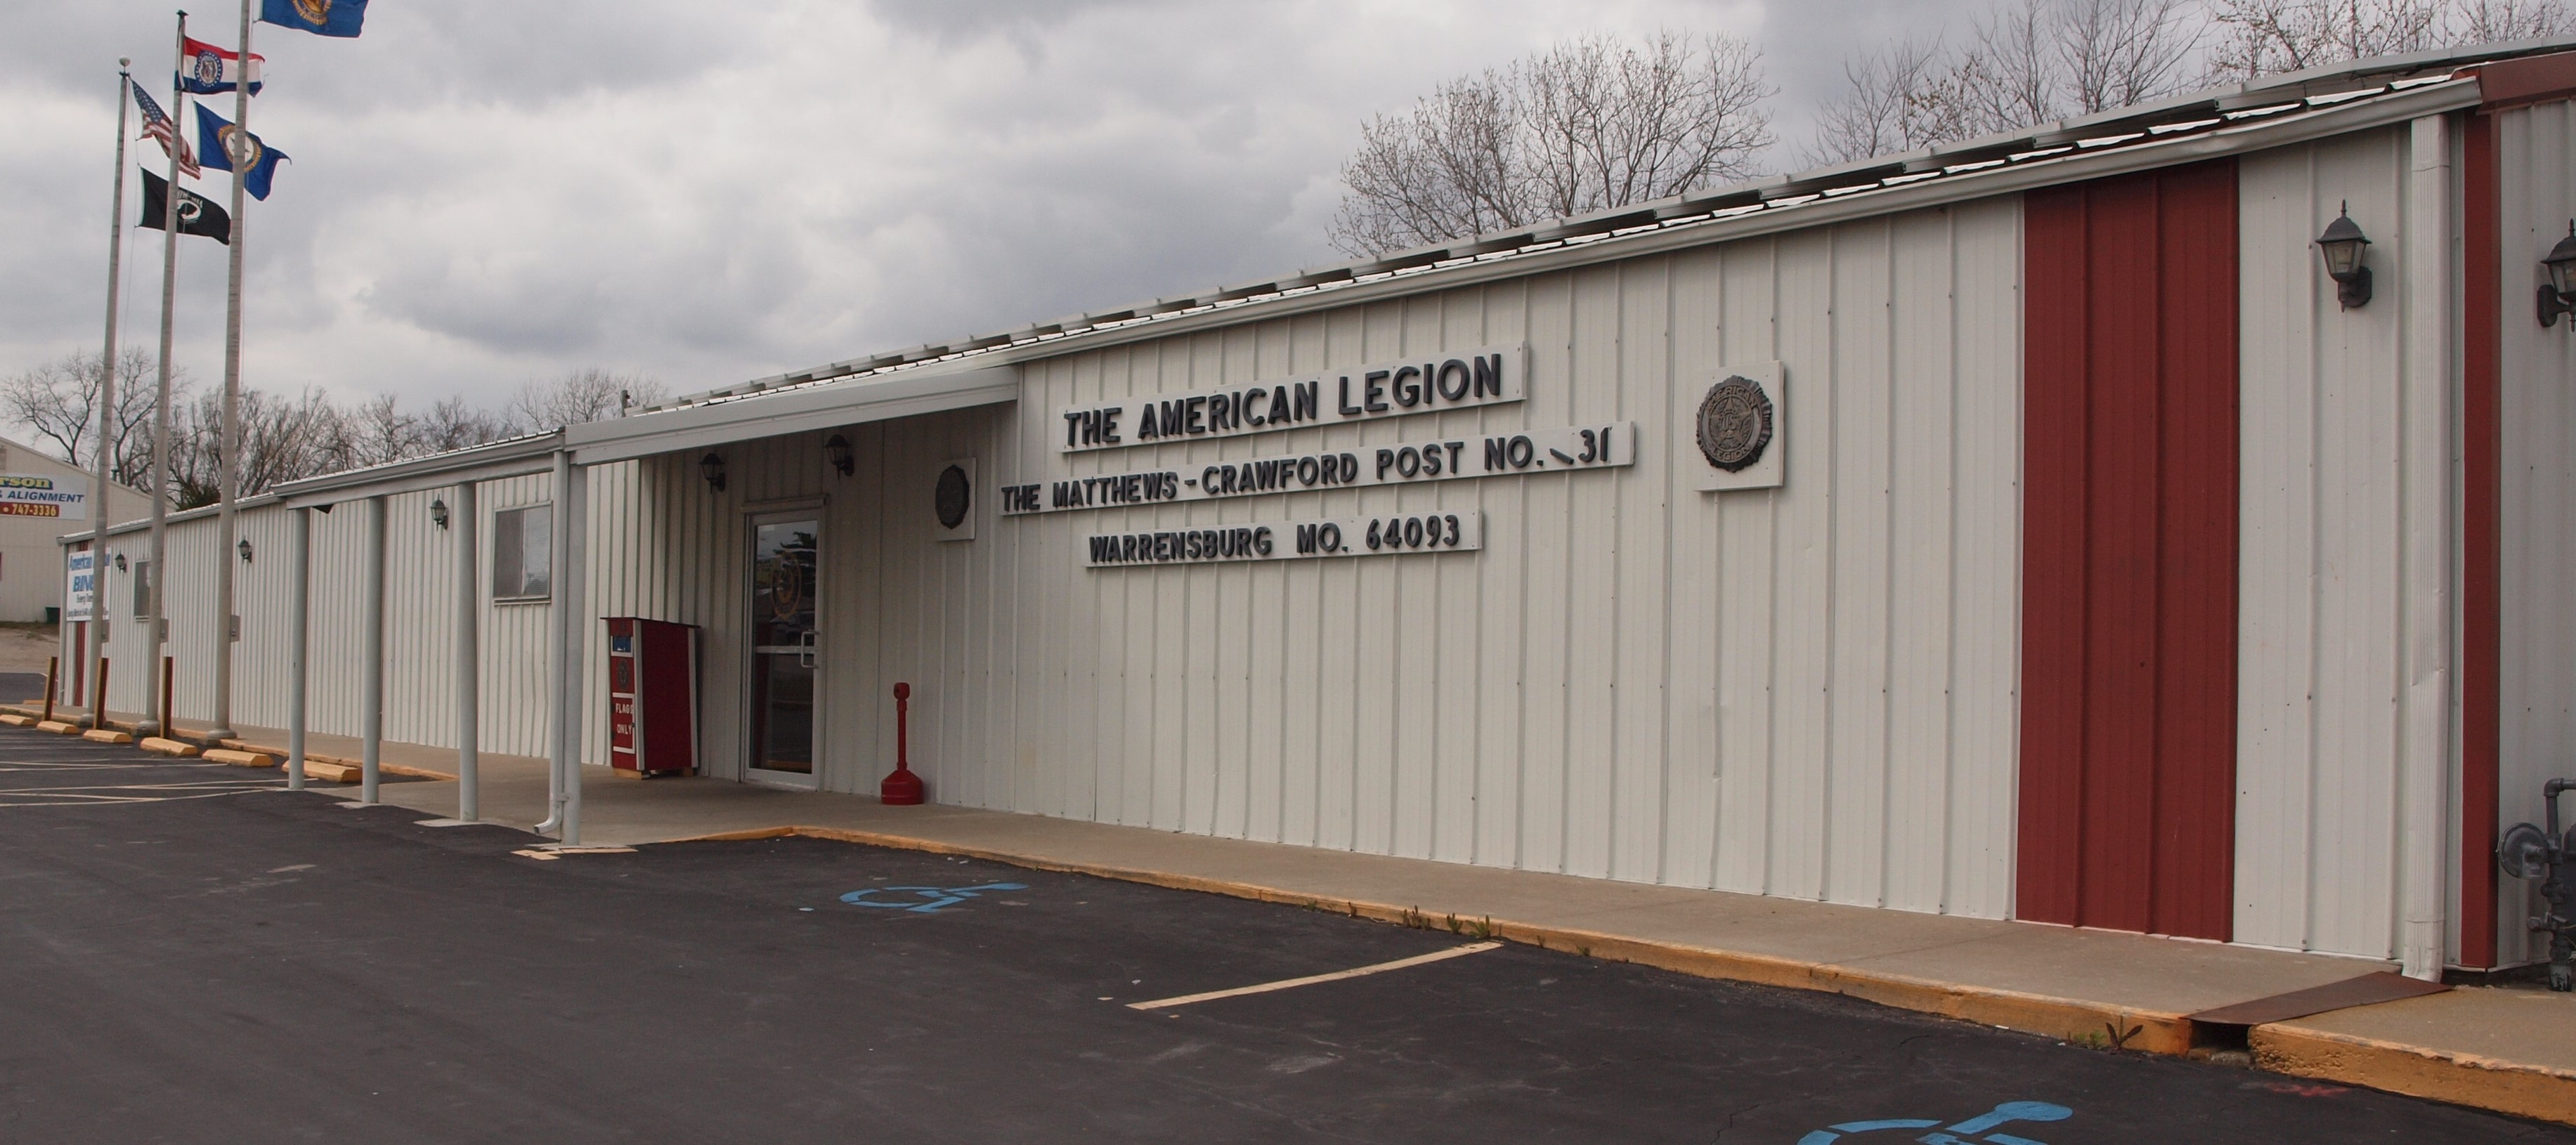 American Legion Post 131, Warrensburg, MO